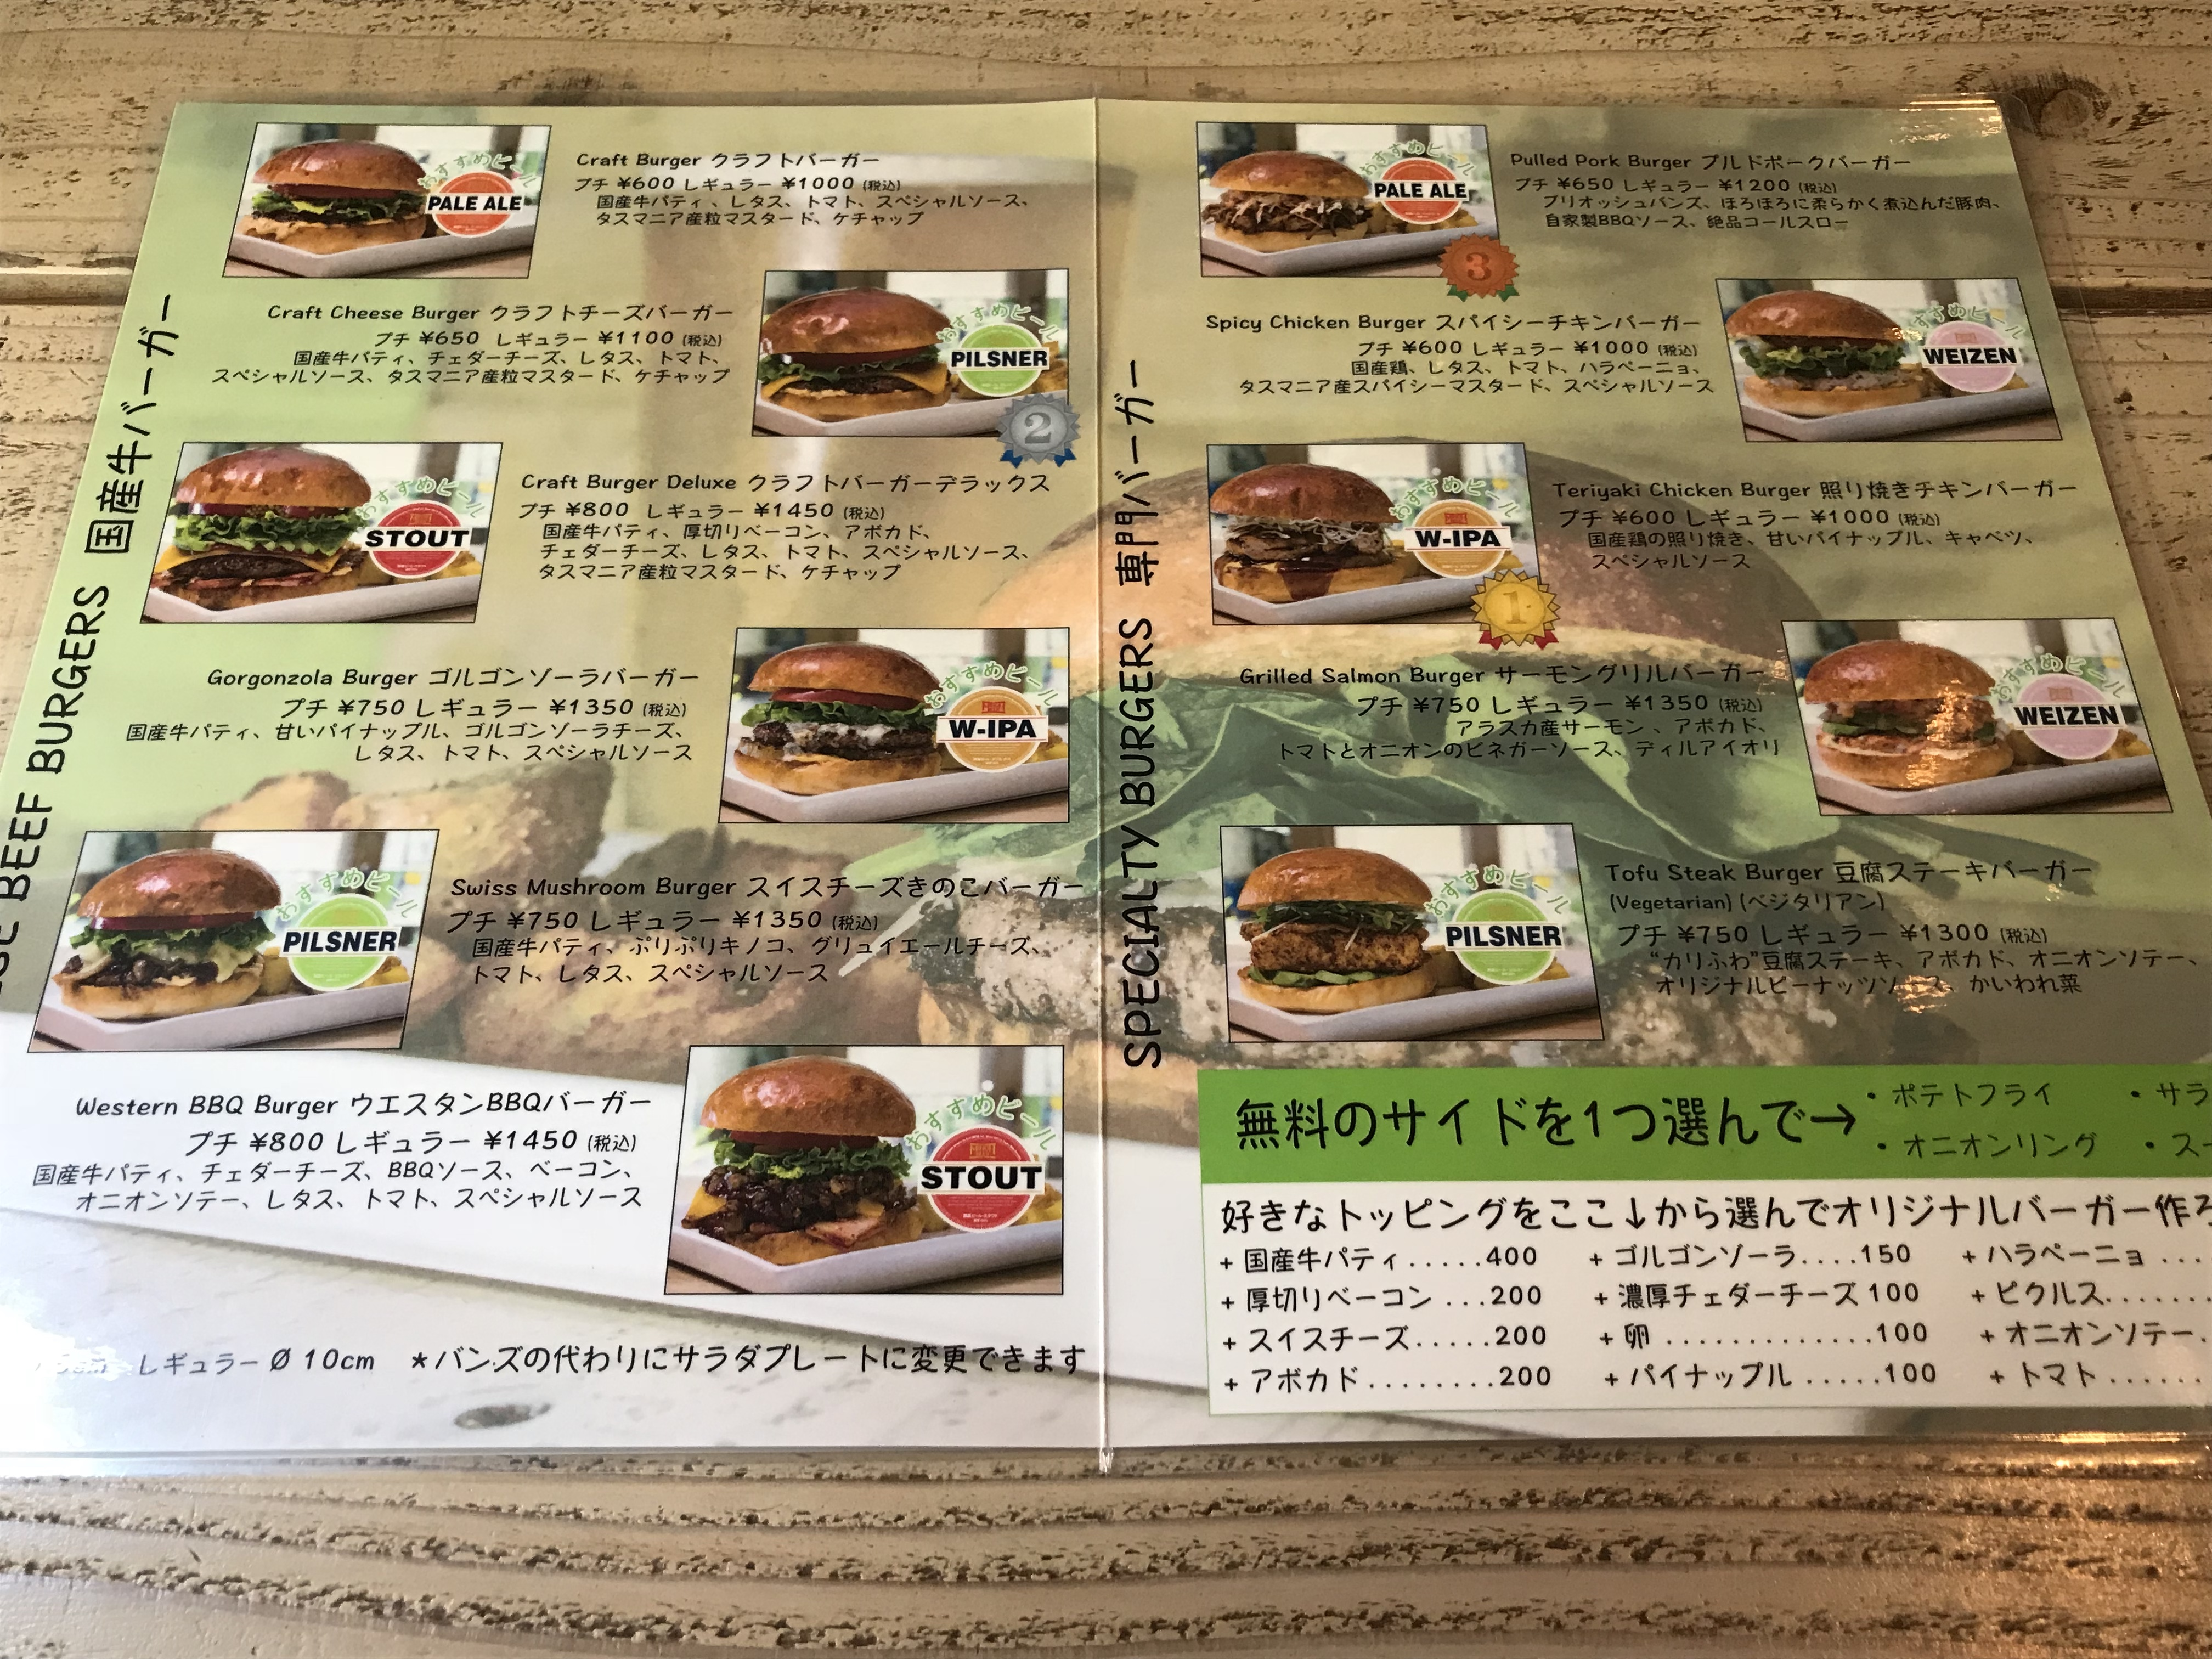 craftburger-menu2